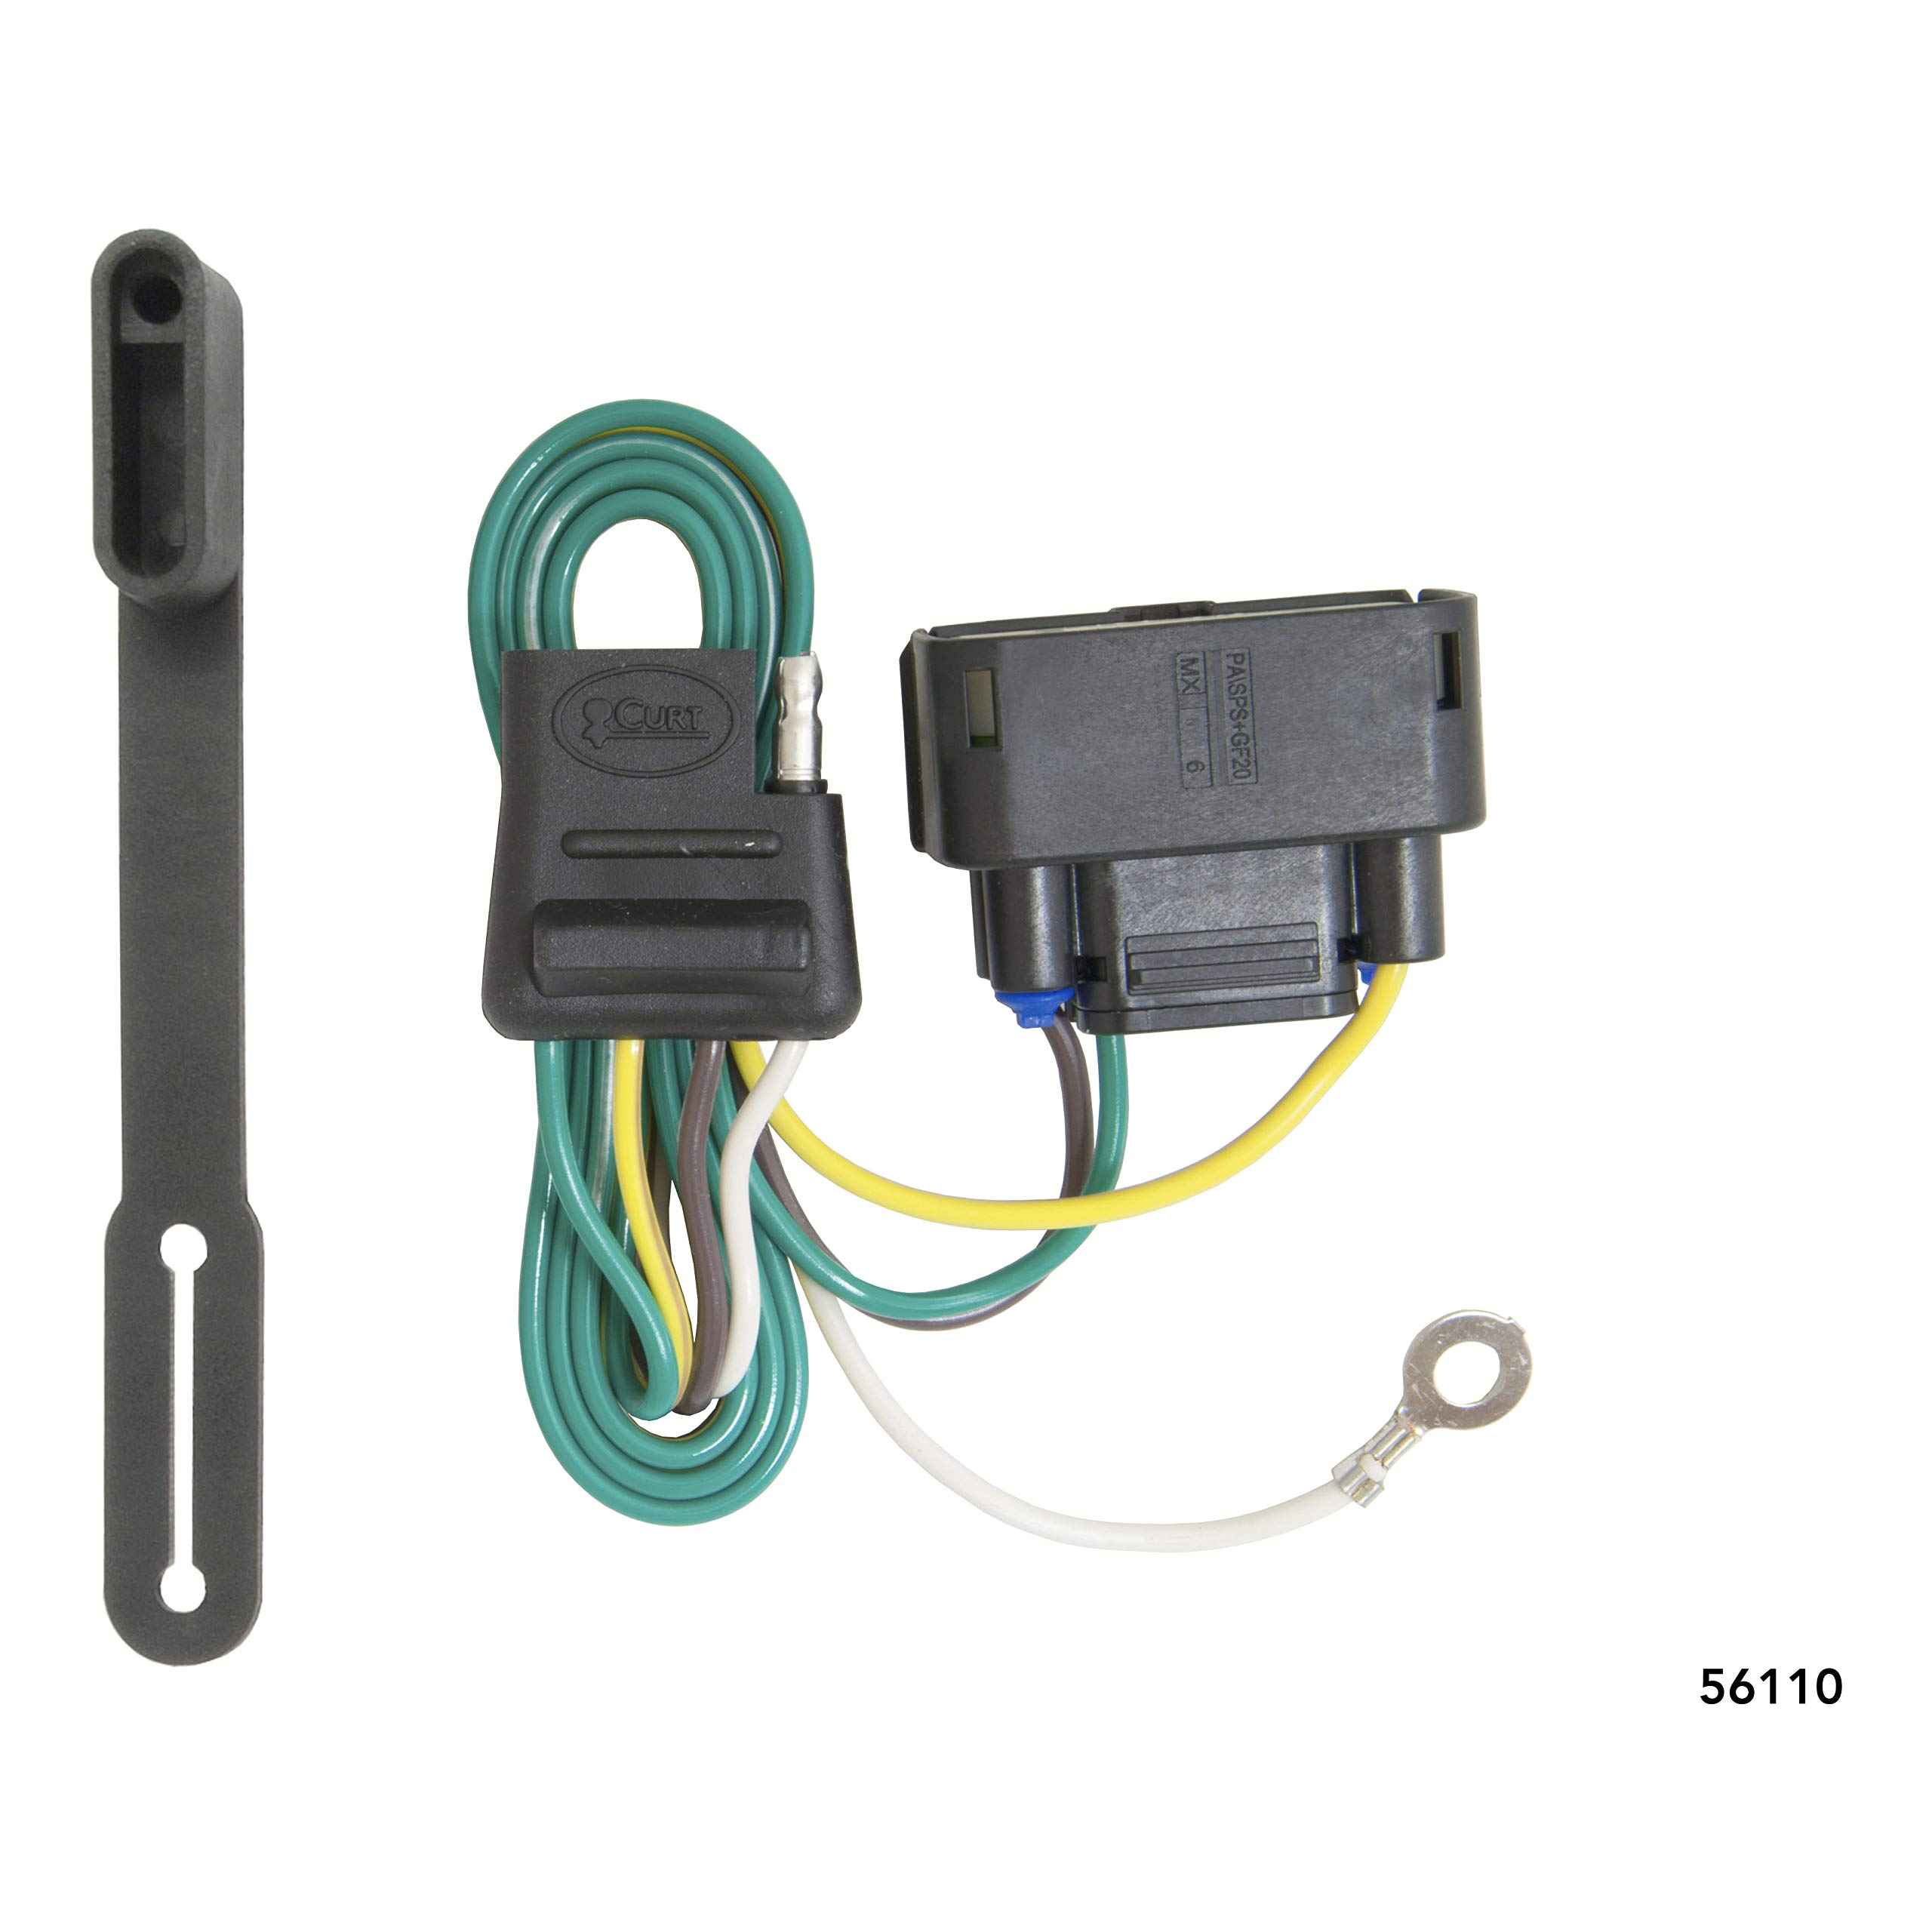 CURT 56110 Vehicle-Side Custom 4-Pin Trailer Wiring Harness for Select Ford F-150 by CURT